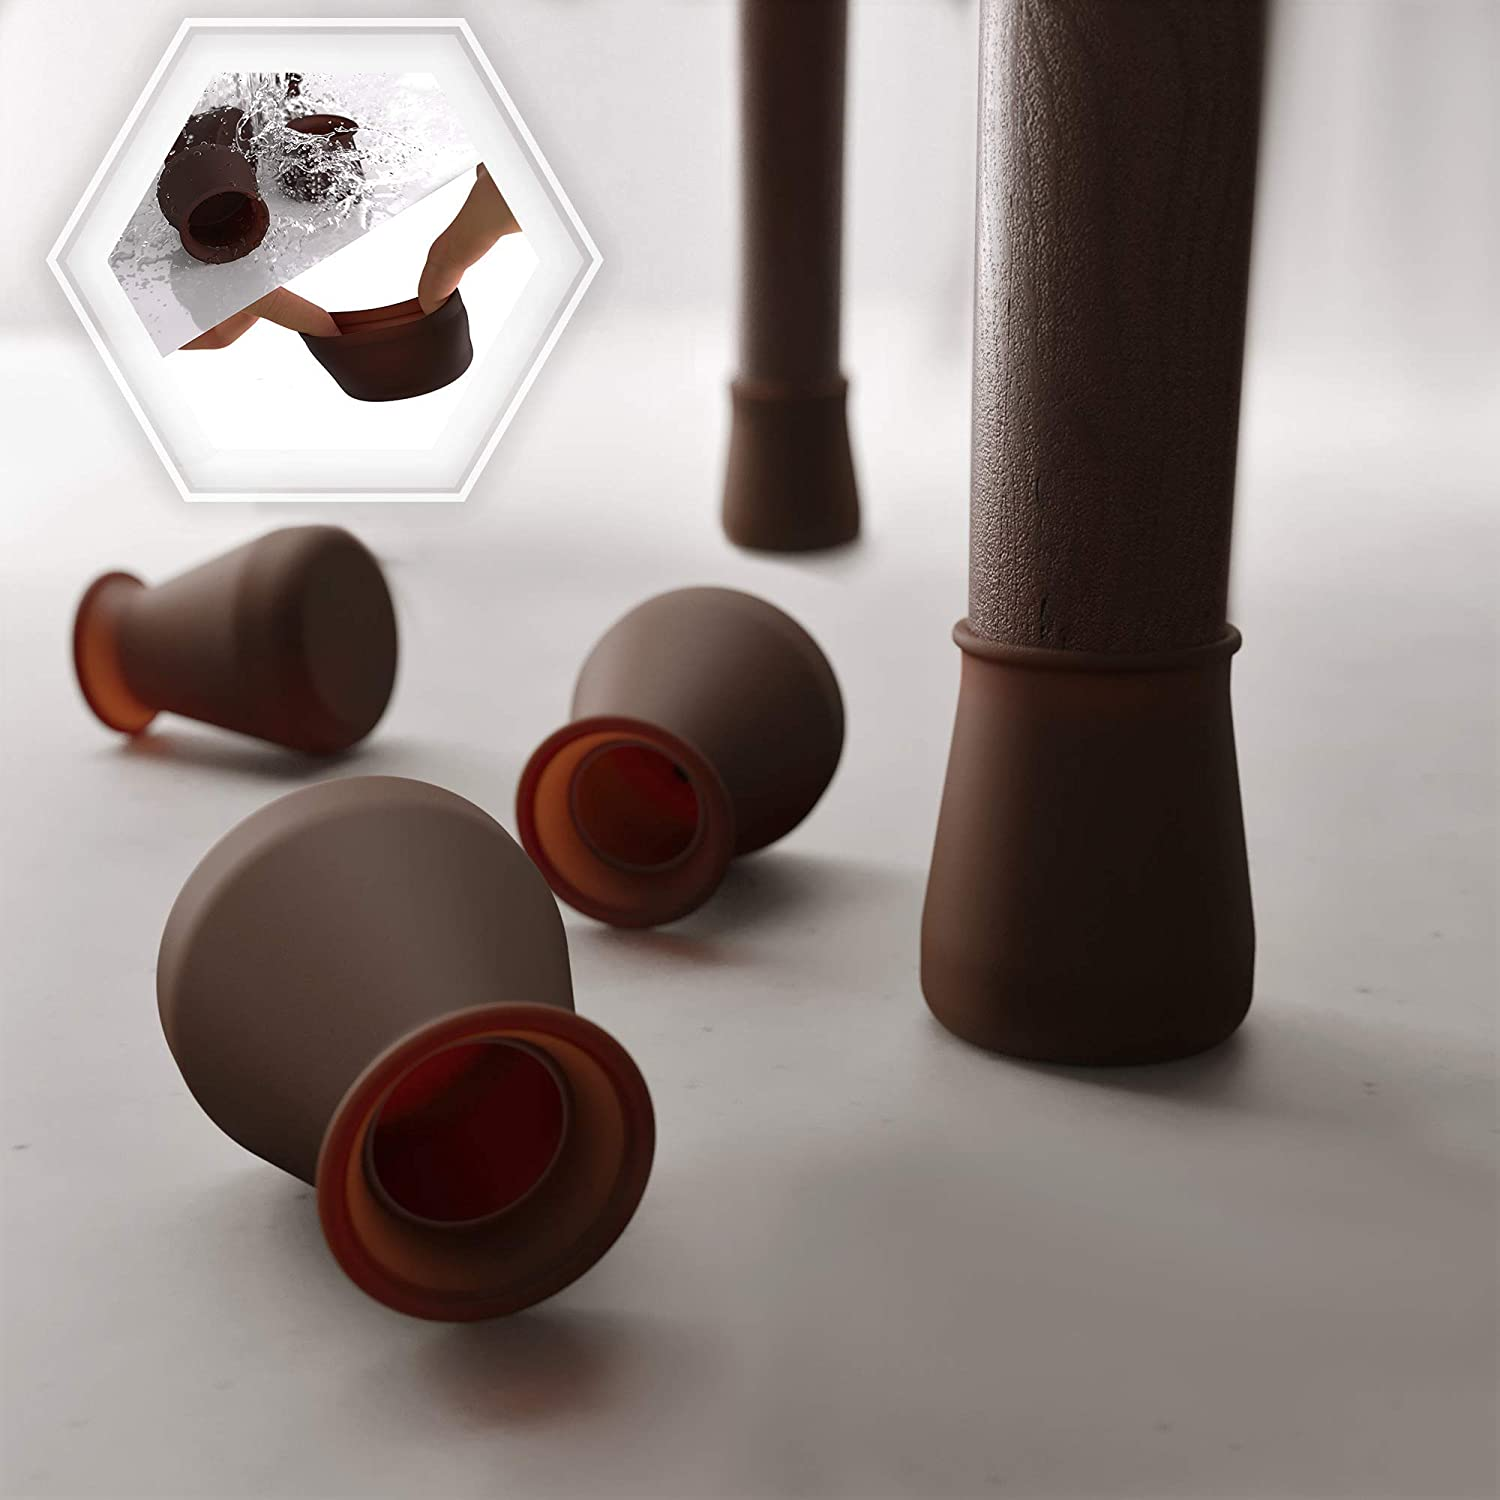 16 PCS SMALL SIZE Dark Walnut Color Silicone Chair Leg Floor Protectors – Anti-Slip Furniture Silicon Protection Cover-Silicone Furniture Leg Caps. Protect furniture & floors from scratches and noise.